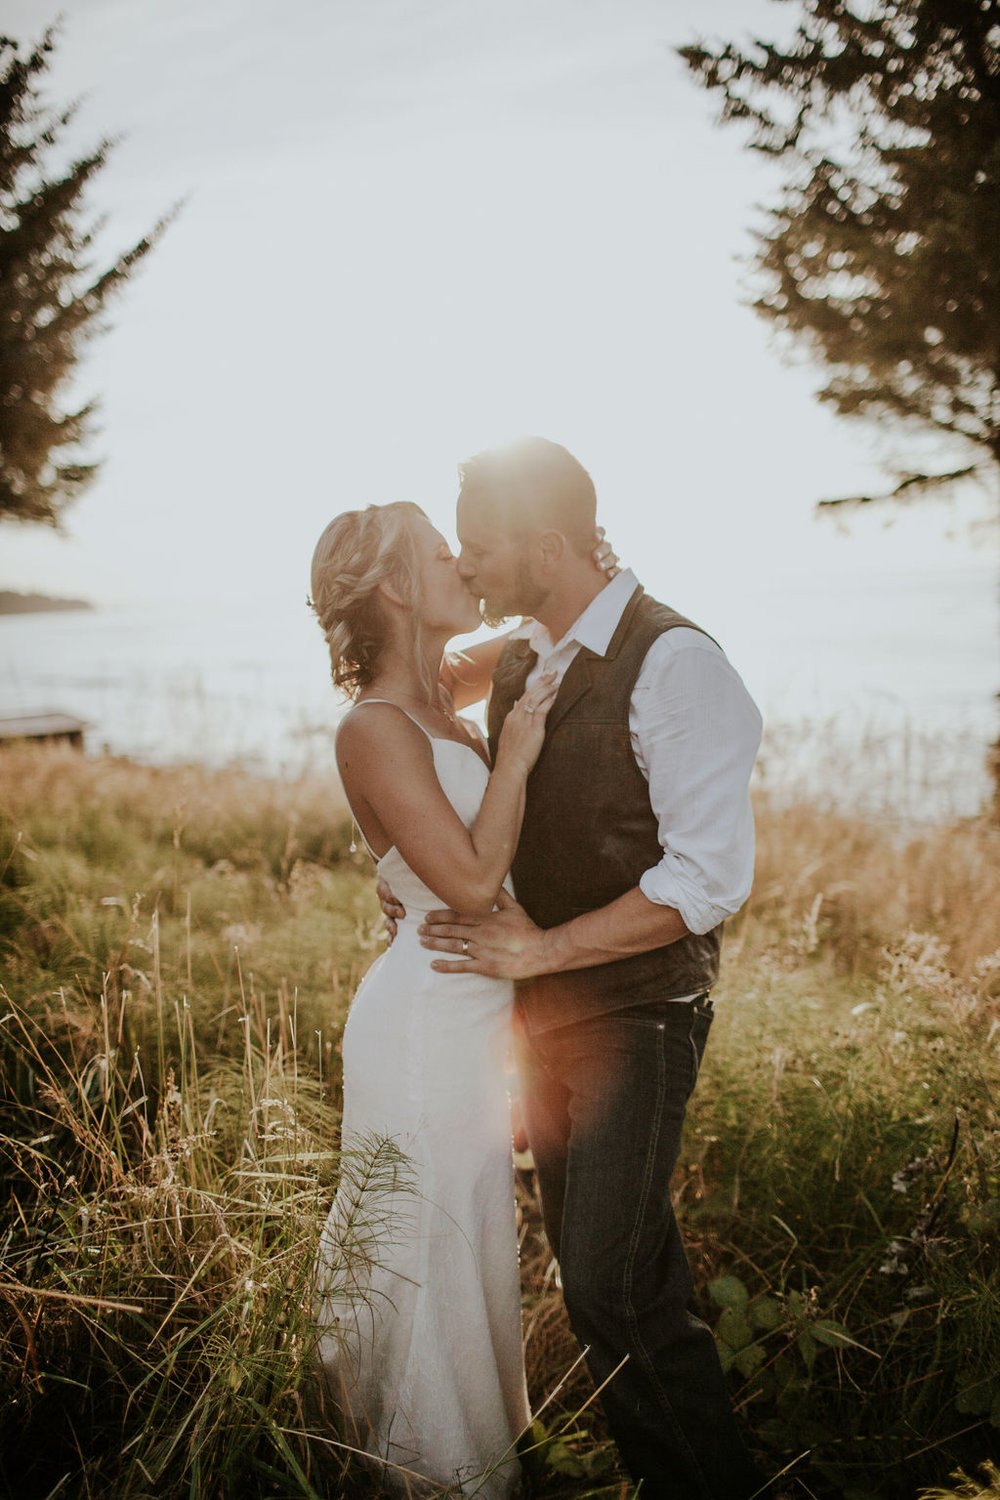 Port-Angeles-Wedding-Photographer-pnw-Whiskey-Creek-Beach-NW-Washington-couples-kayladawnphoto-kayla-dawn-photography-olympic-peninsula-hurricane-ridge-51.jpg